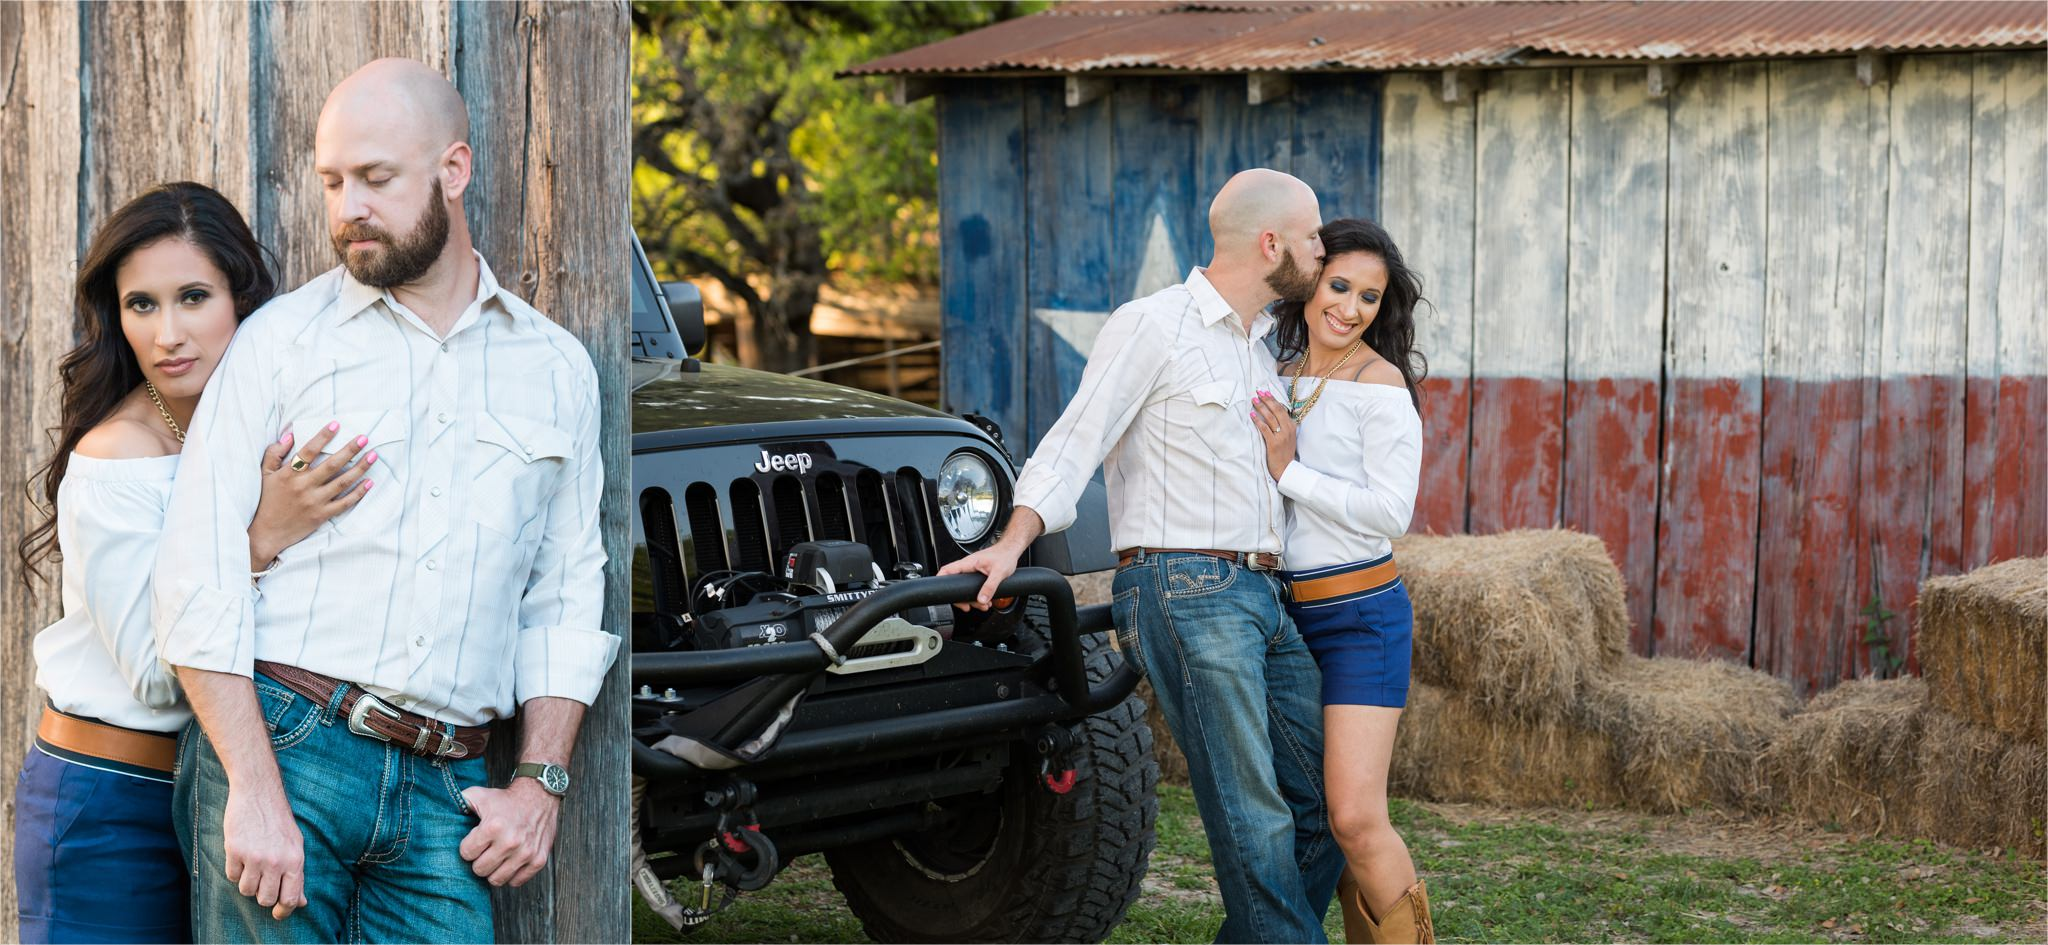 Texas Rustic Barn Engagement Session - San Antonio Engagement and Wedding Photographer 1